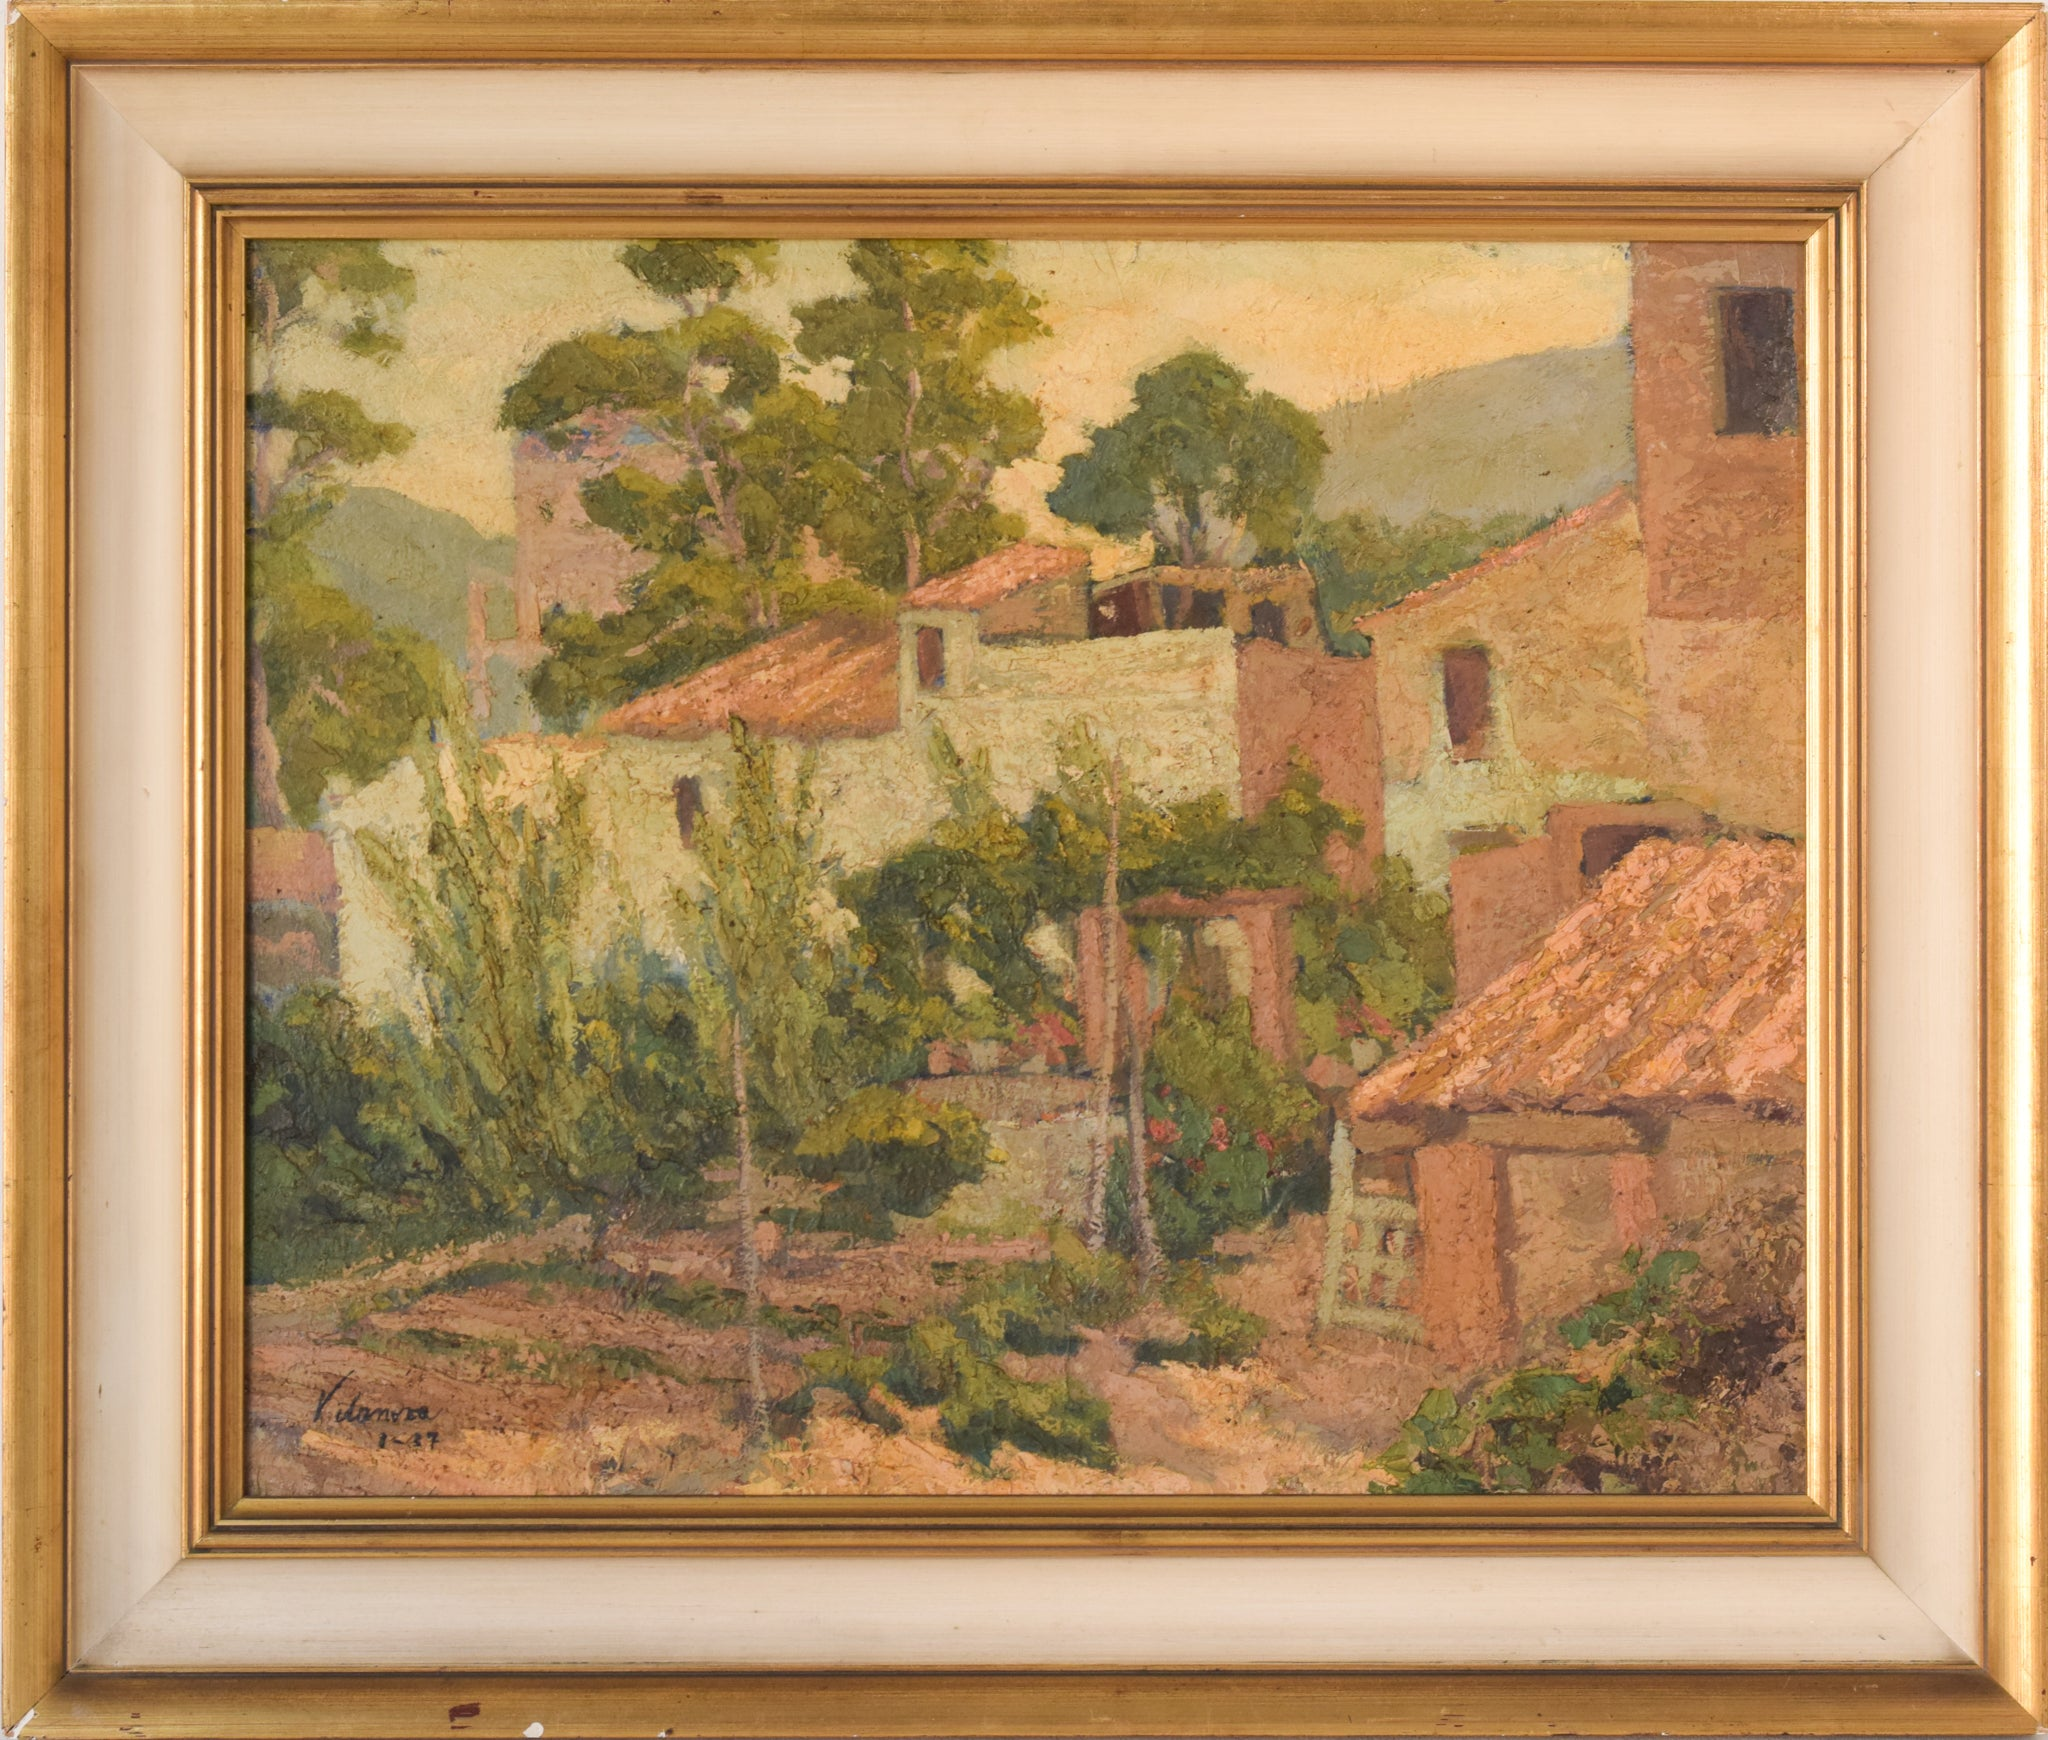 Signed & Dated 37 Framed Impressionist Oil Of Houses and Trees